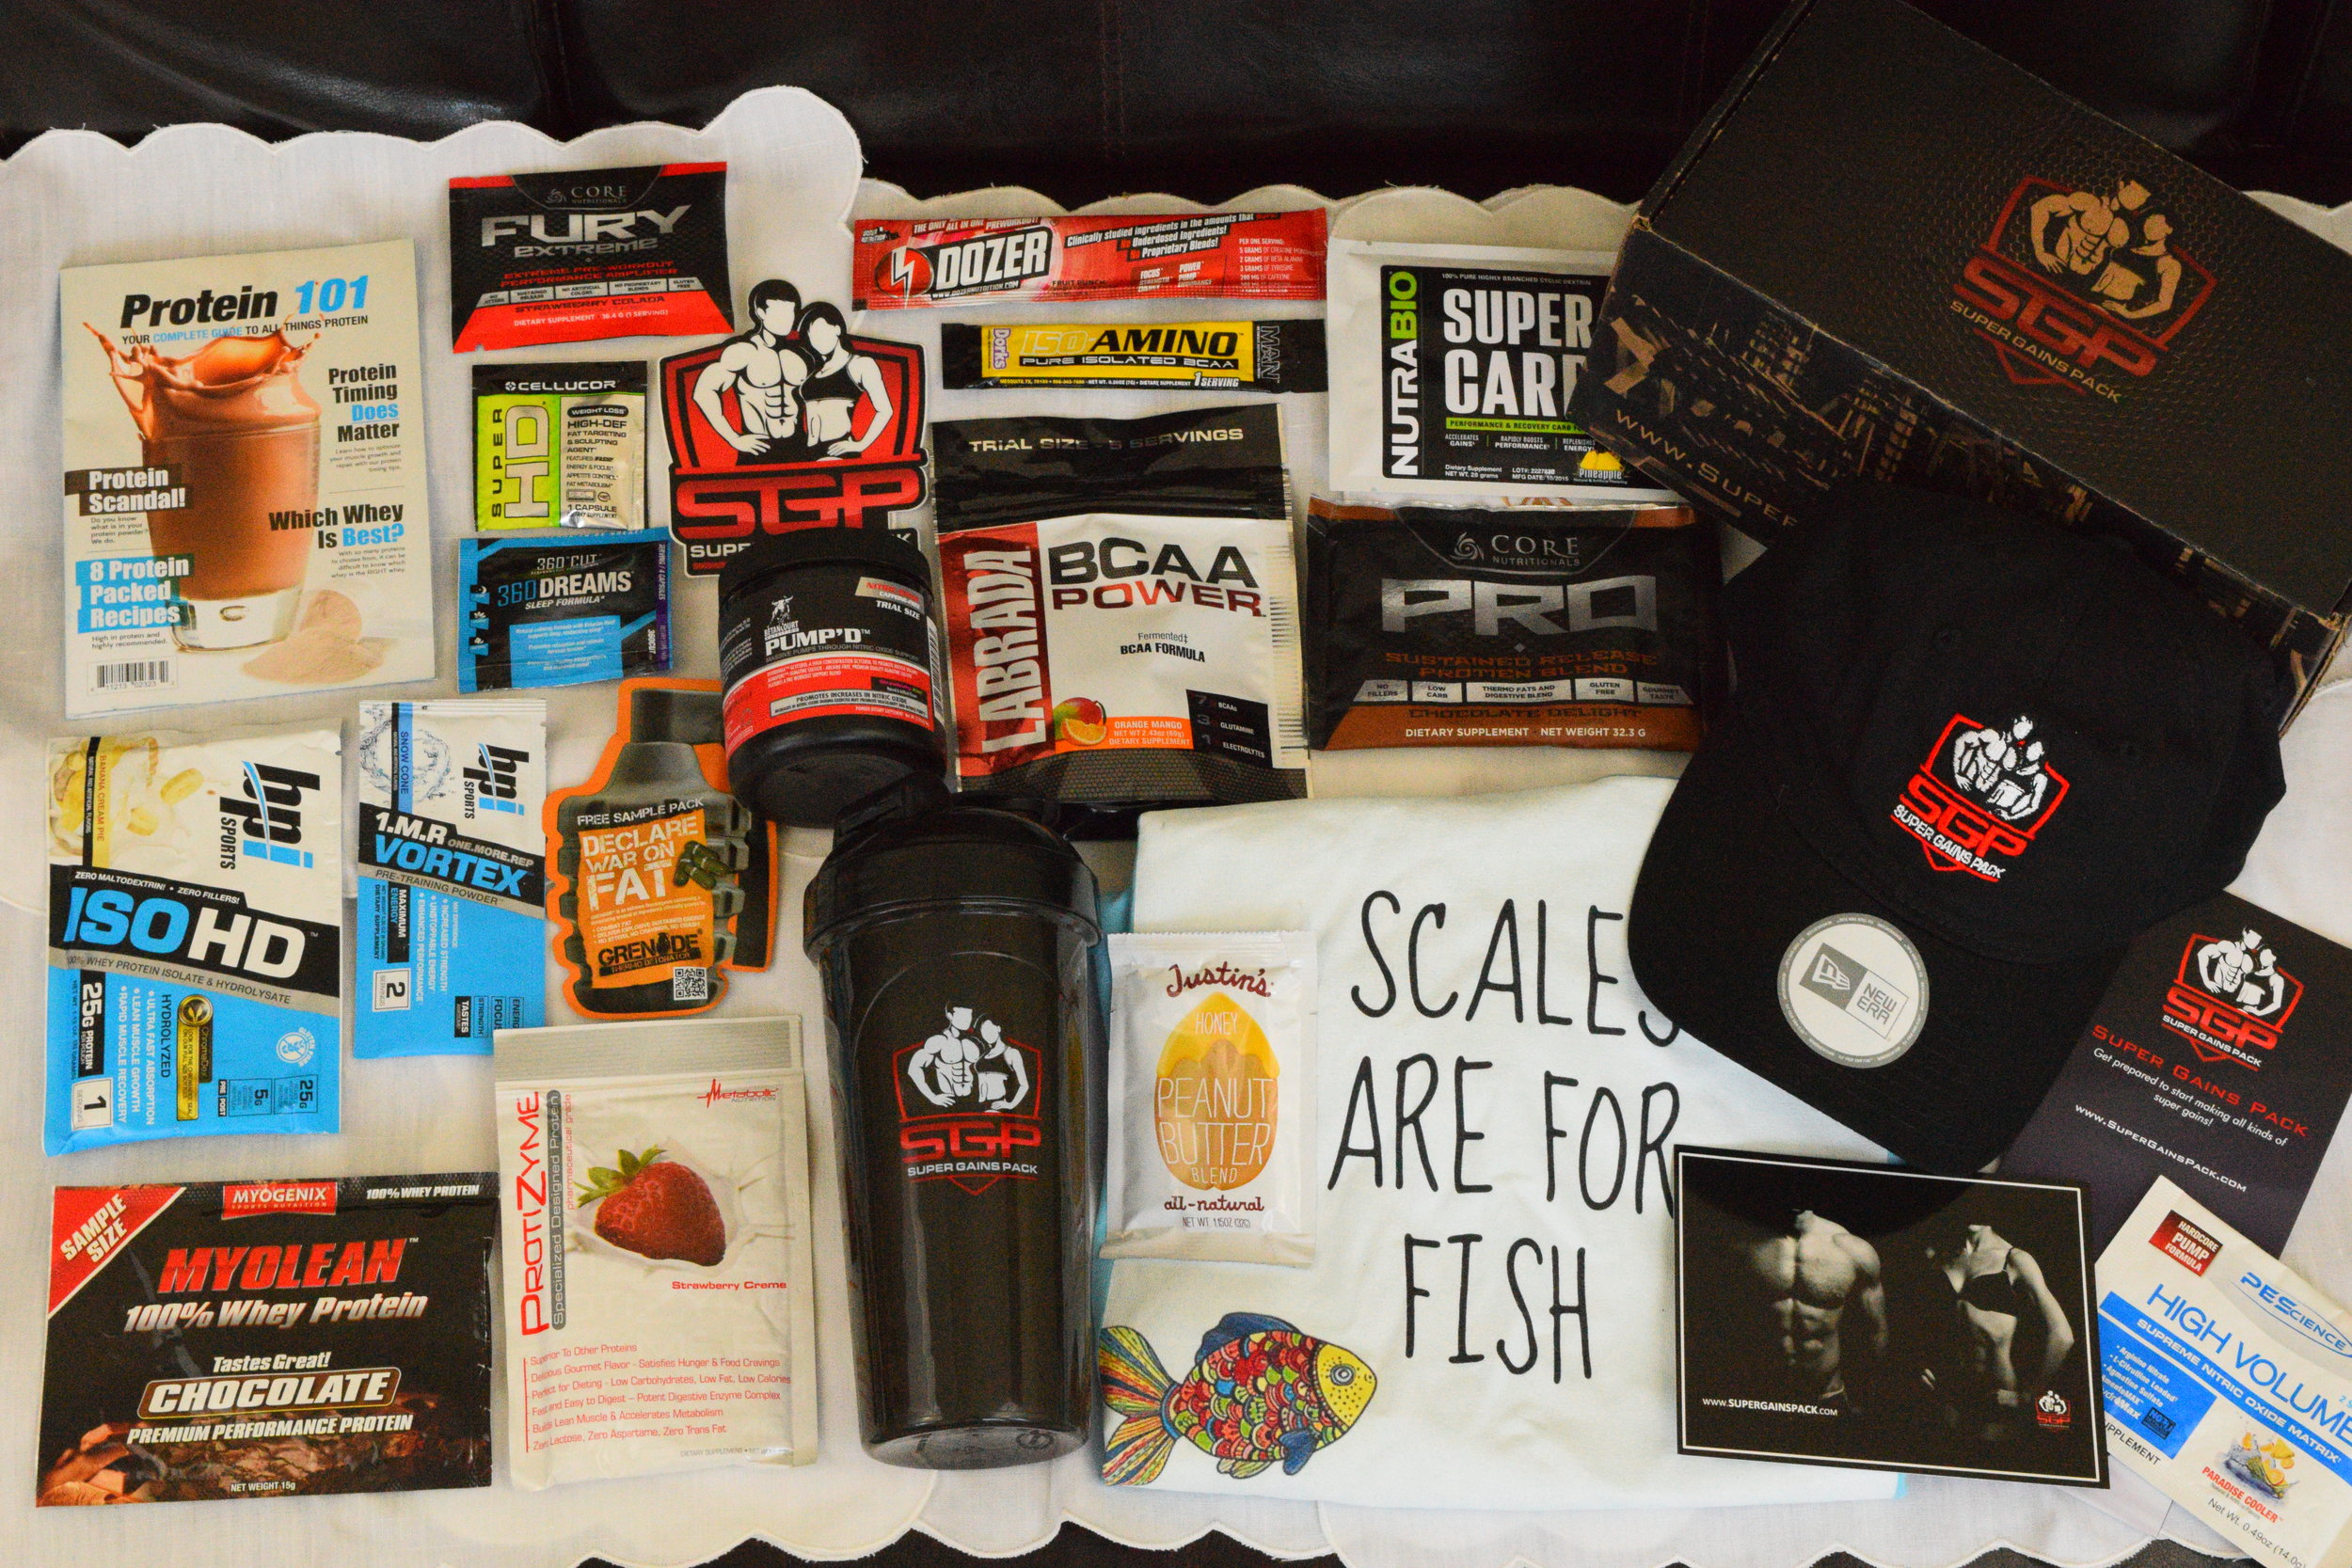 Super Gains Pack first box January 2016